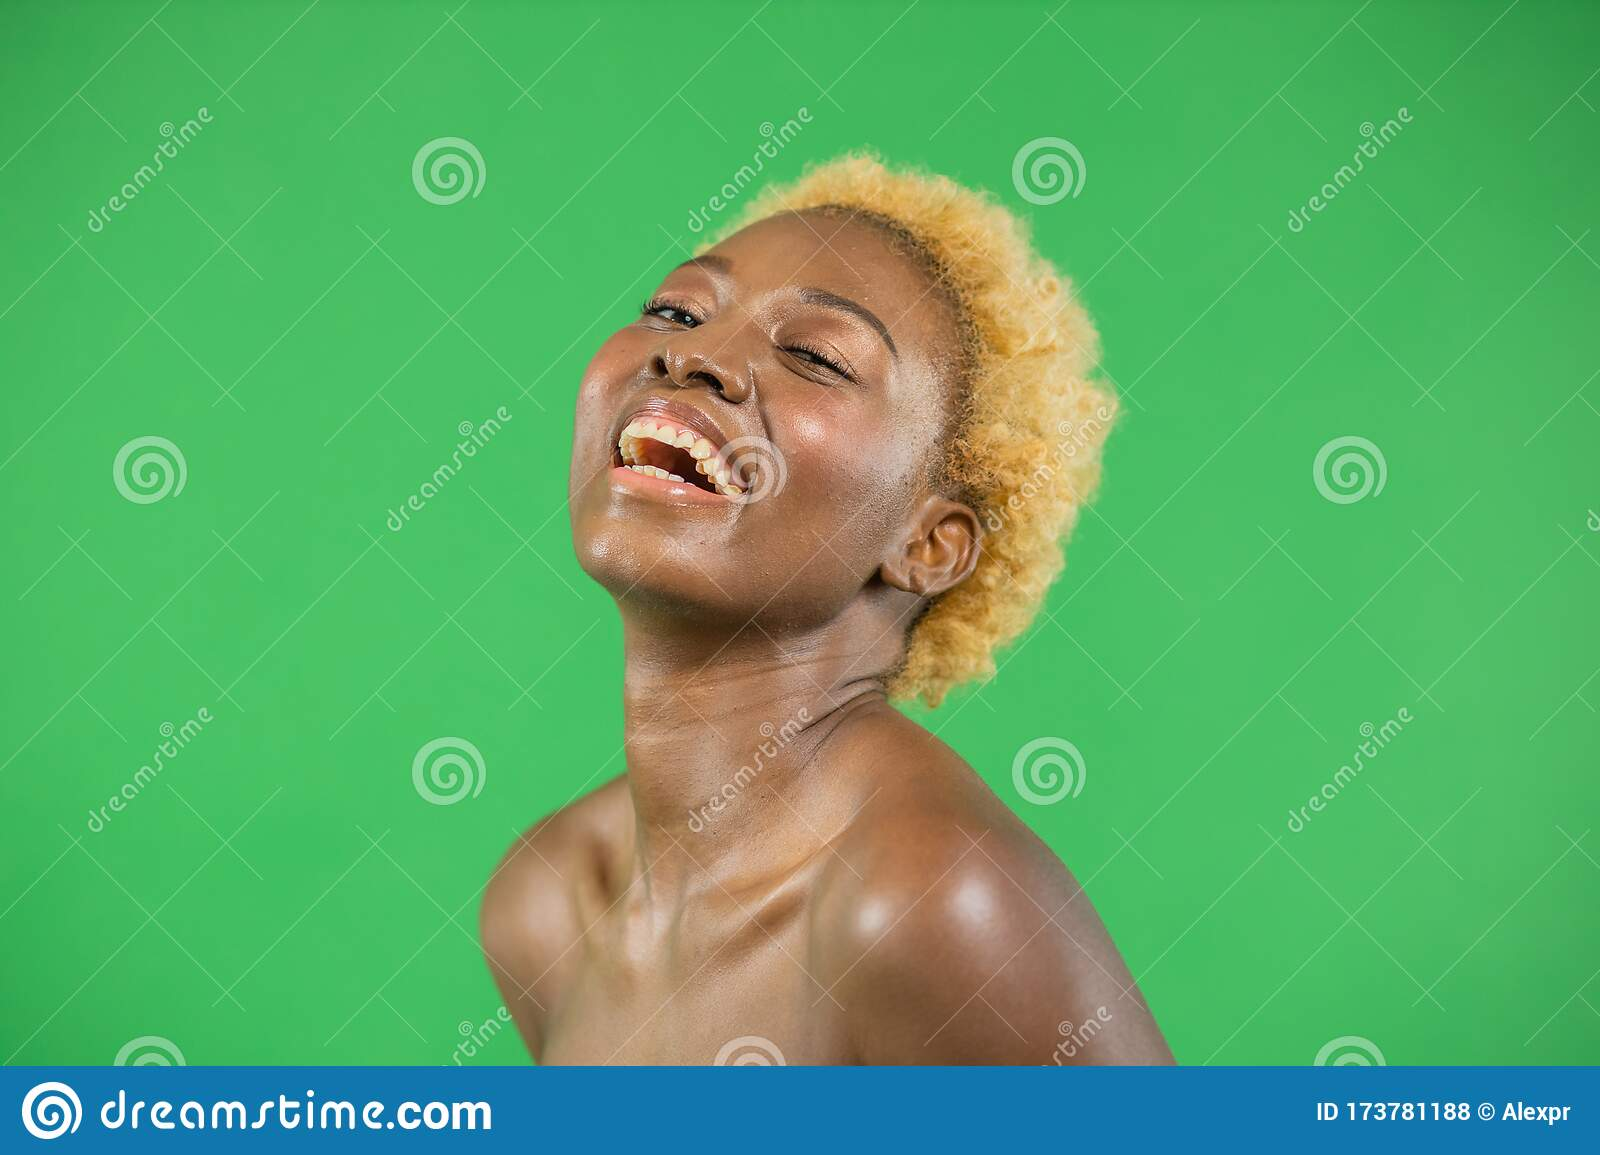 Blonde Beautiful Young Black African American Woman With Natural